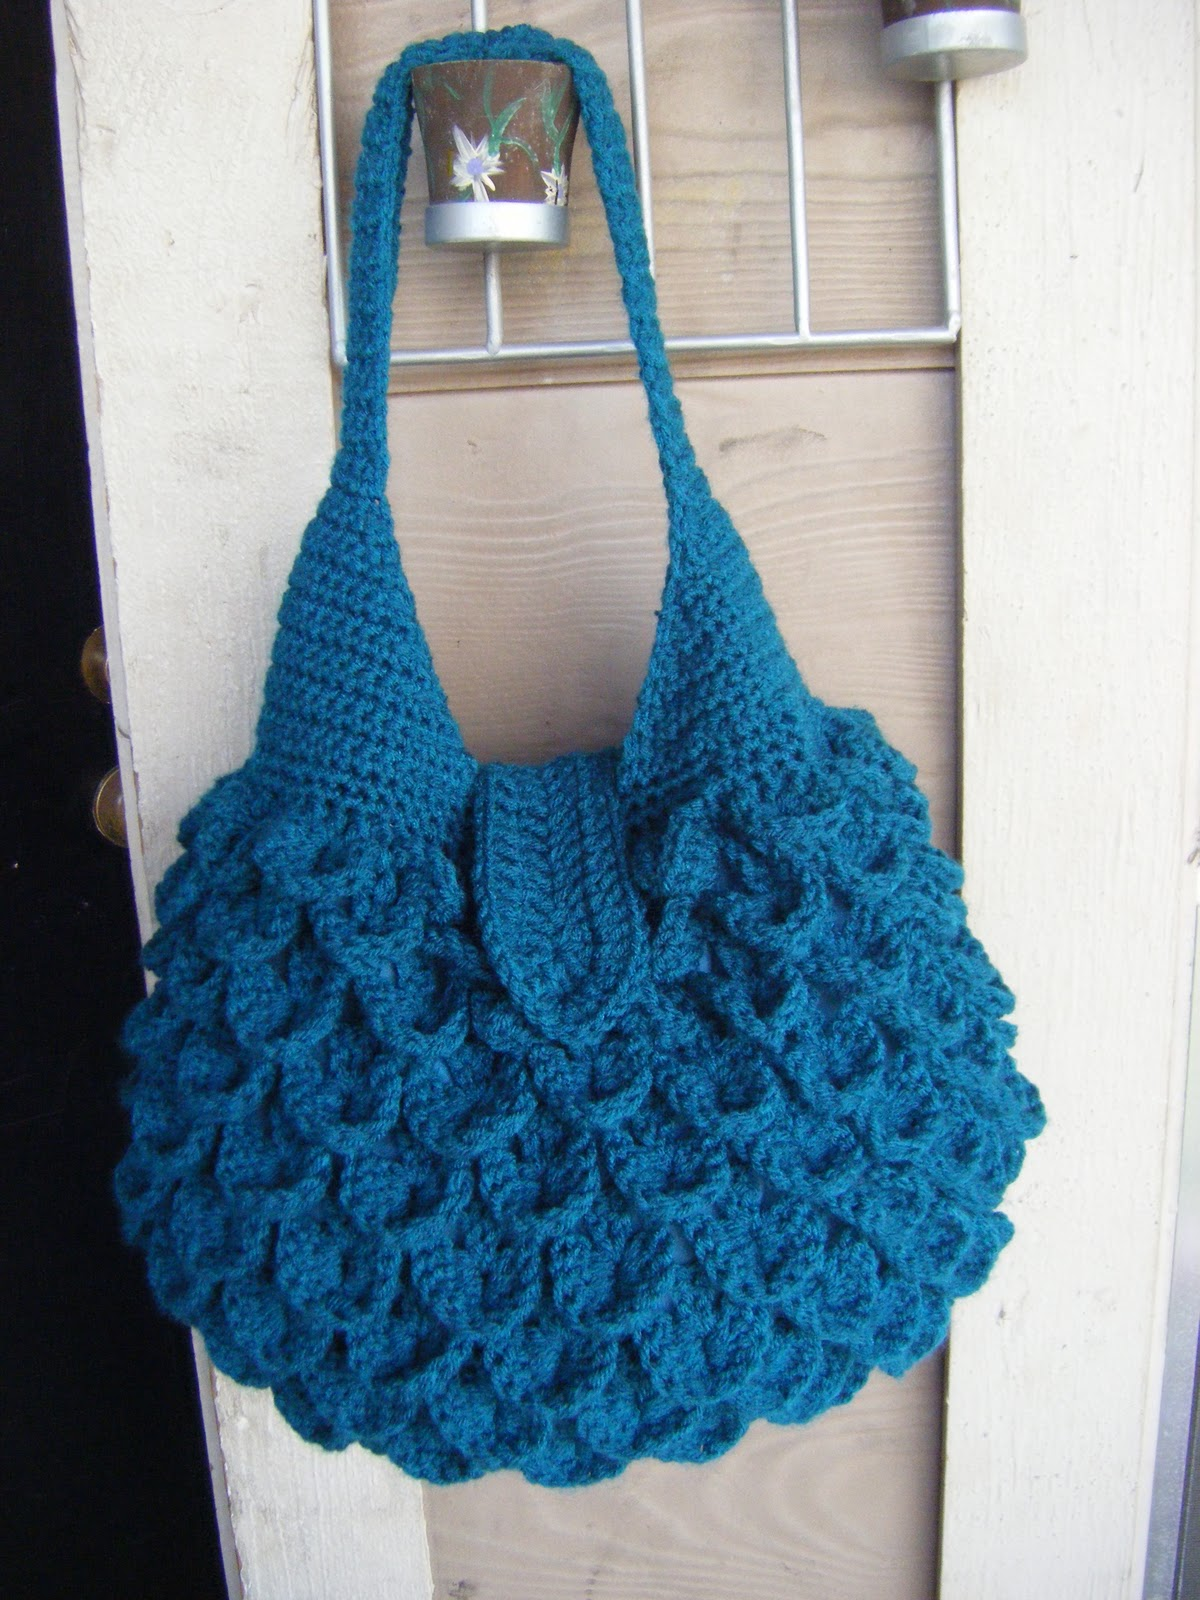 Free Crochet Handbag Patterns : Best Patterns: Crocodile Crochet Bag PATTERN